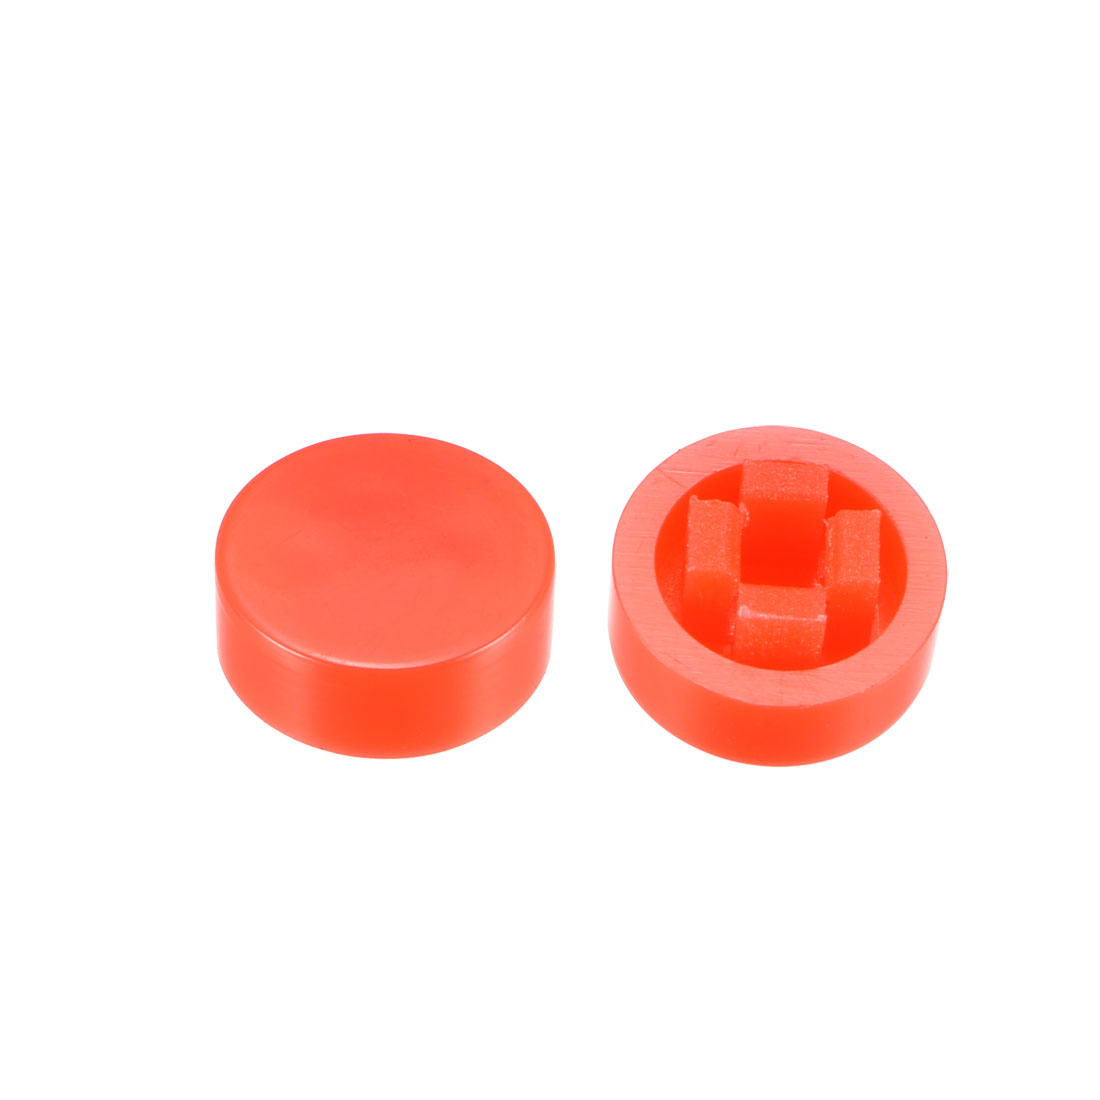 20Pcs Pushbutton Tactile Switch Caps Cover Keycaps Red for 6x6x7.3mm Tact Switch